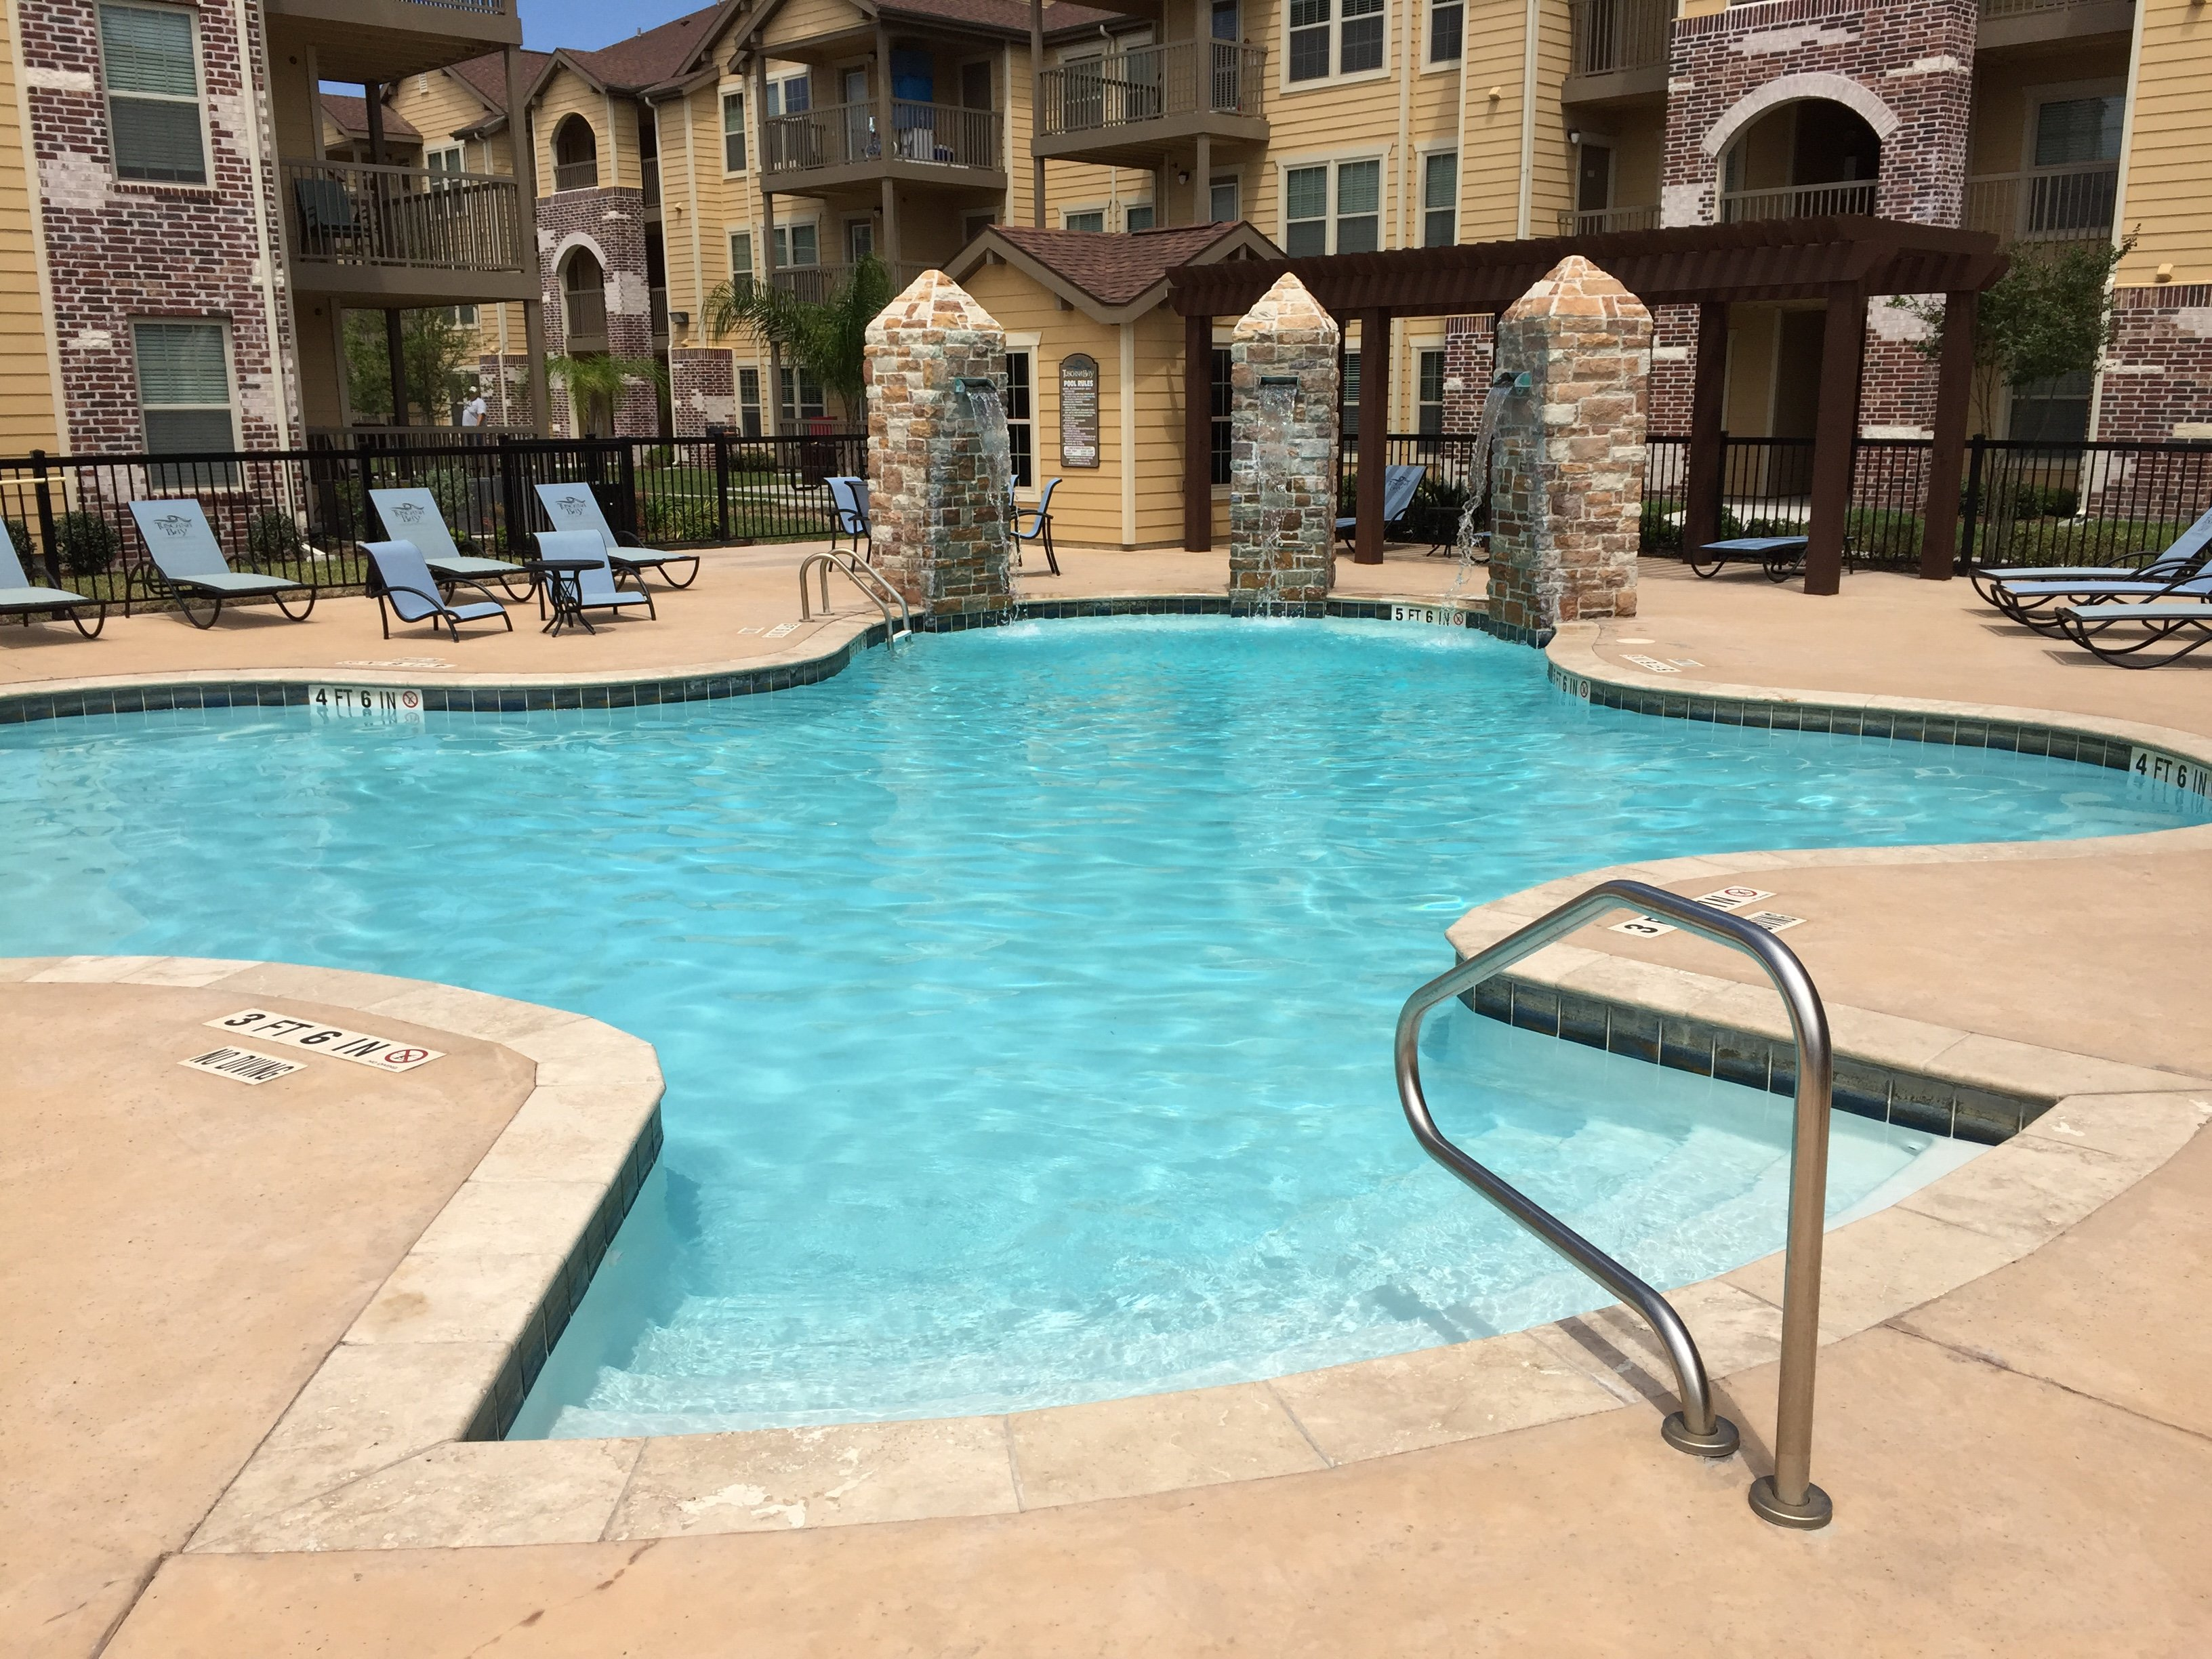 Commercial Pool Contractor Pool Installation Gallery Plainview Canyon Amarillo Pampa